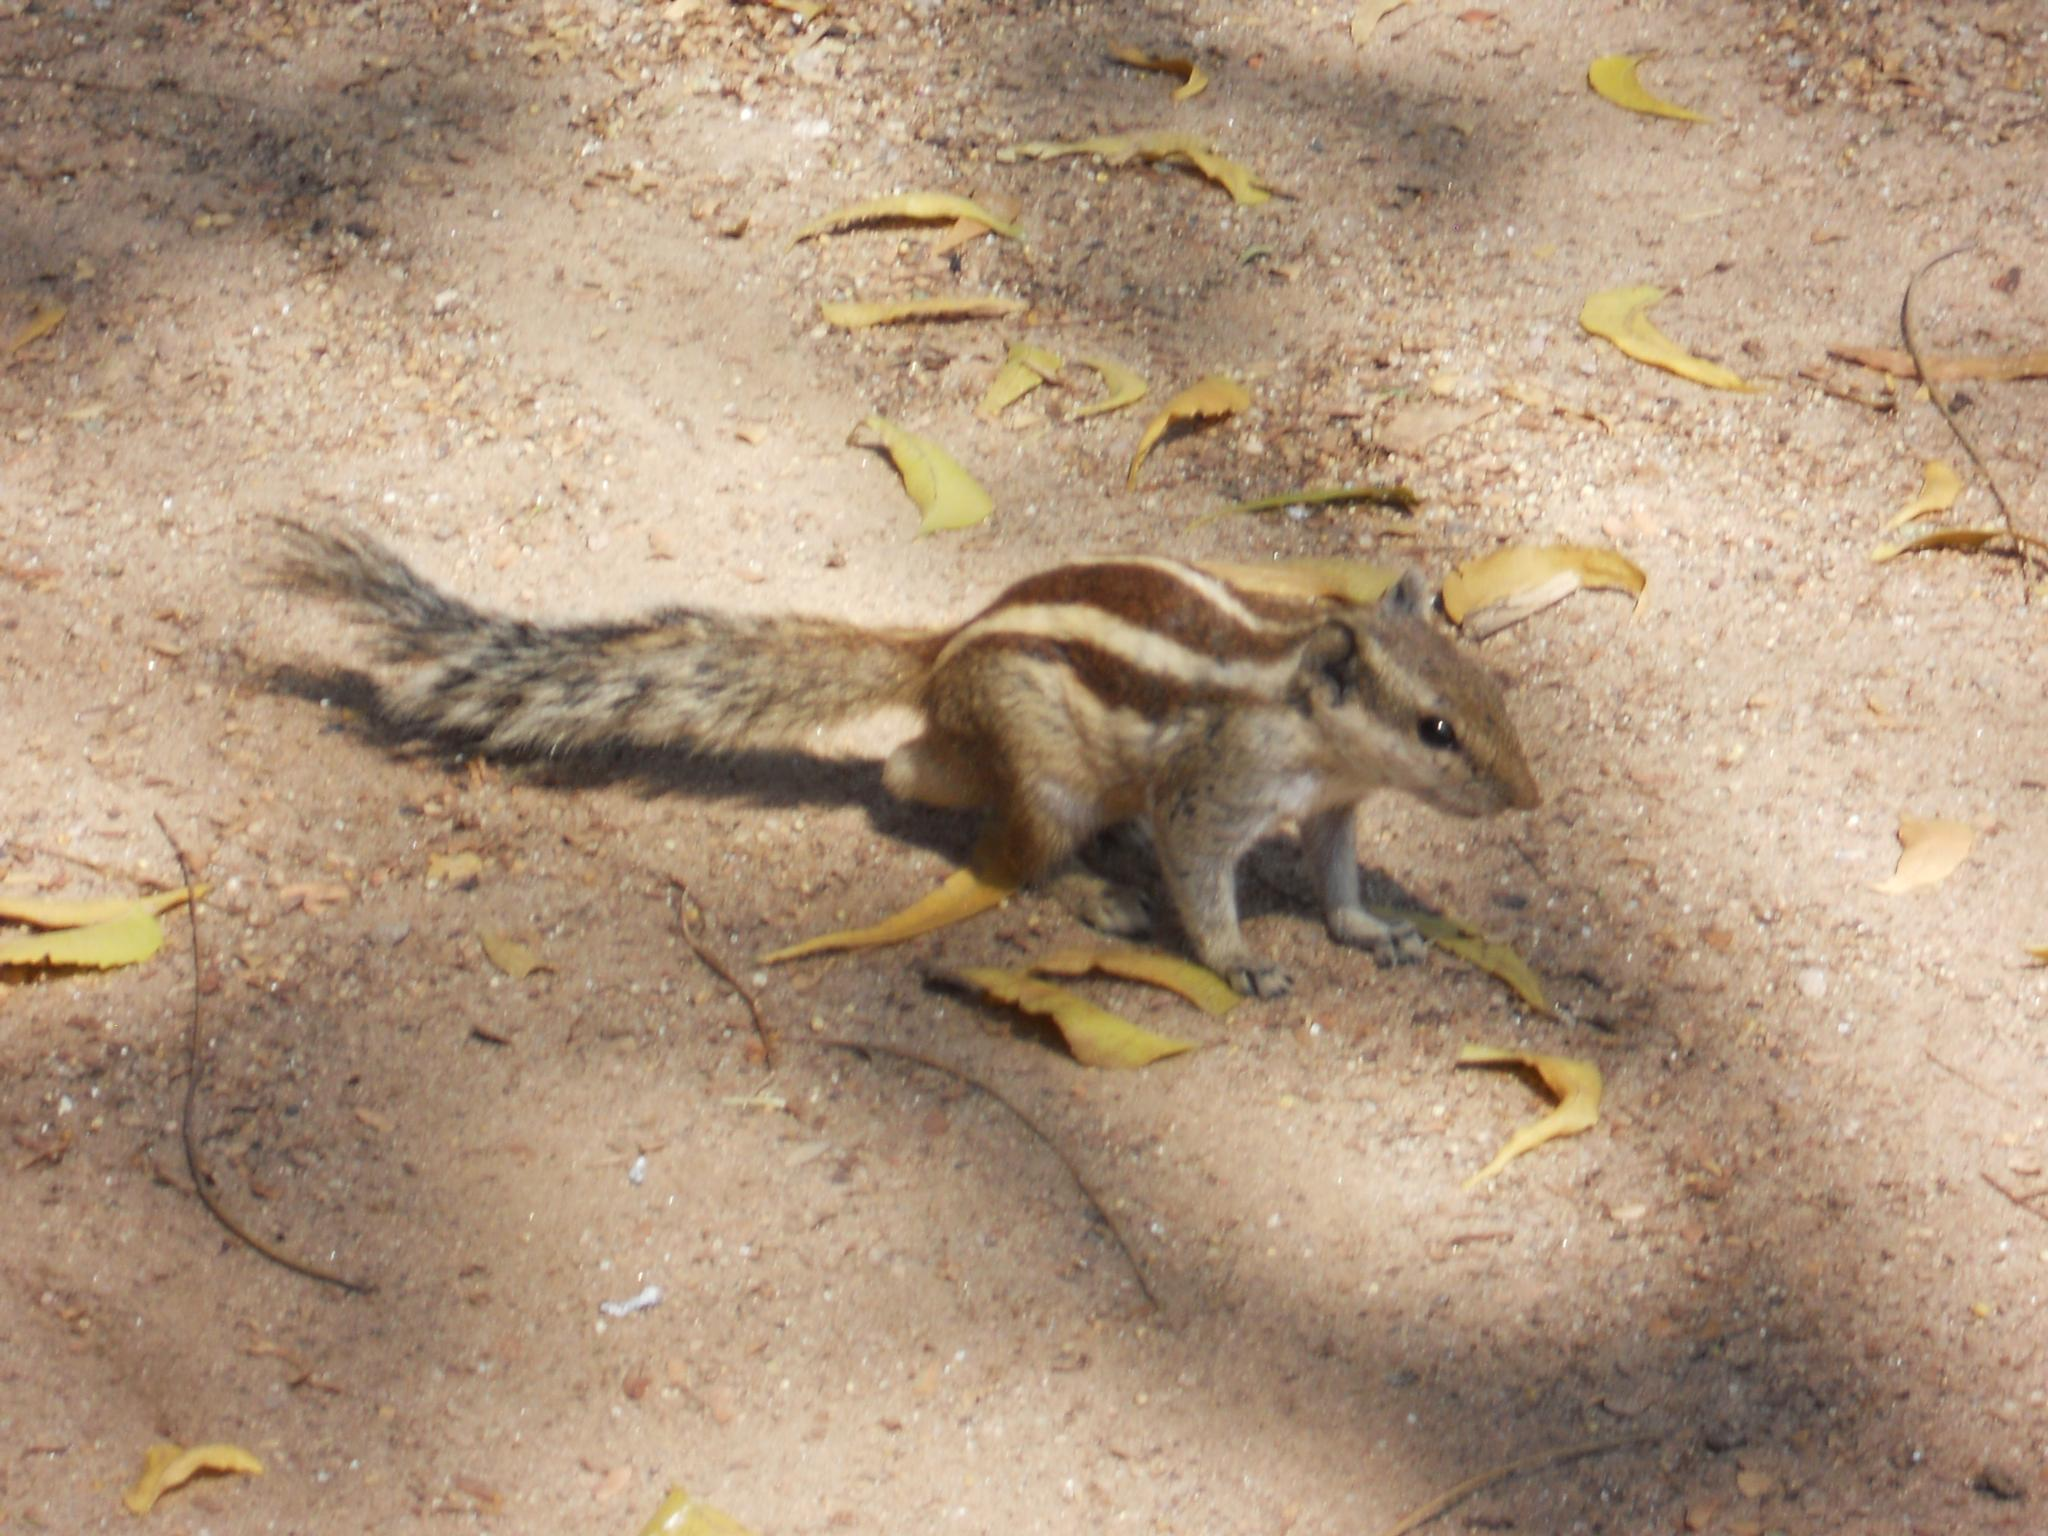 Indian palm squirrel by Danny Rawat321